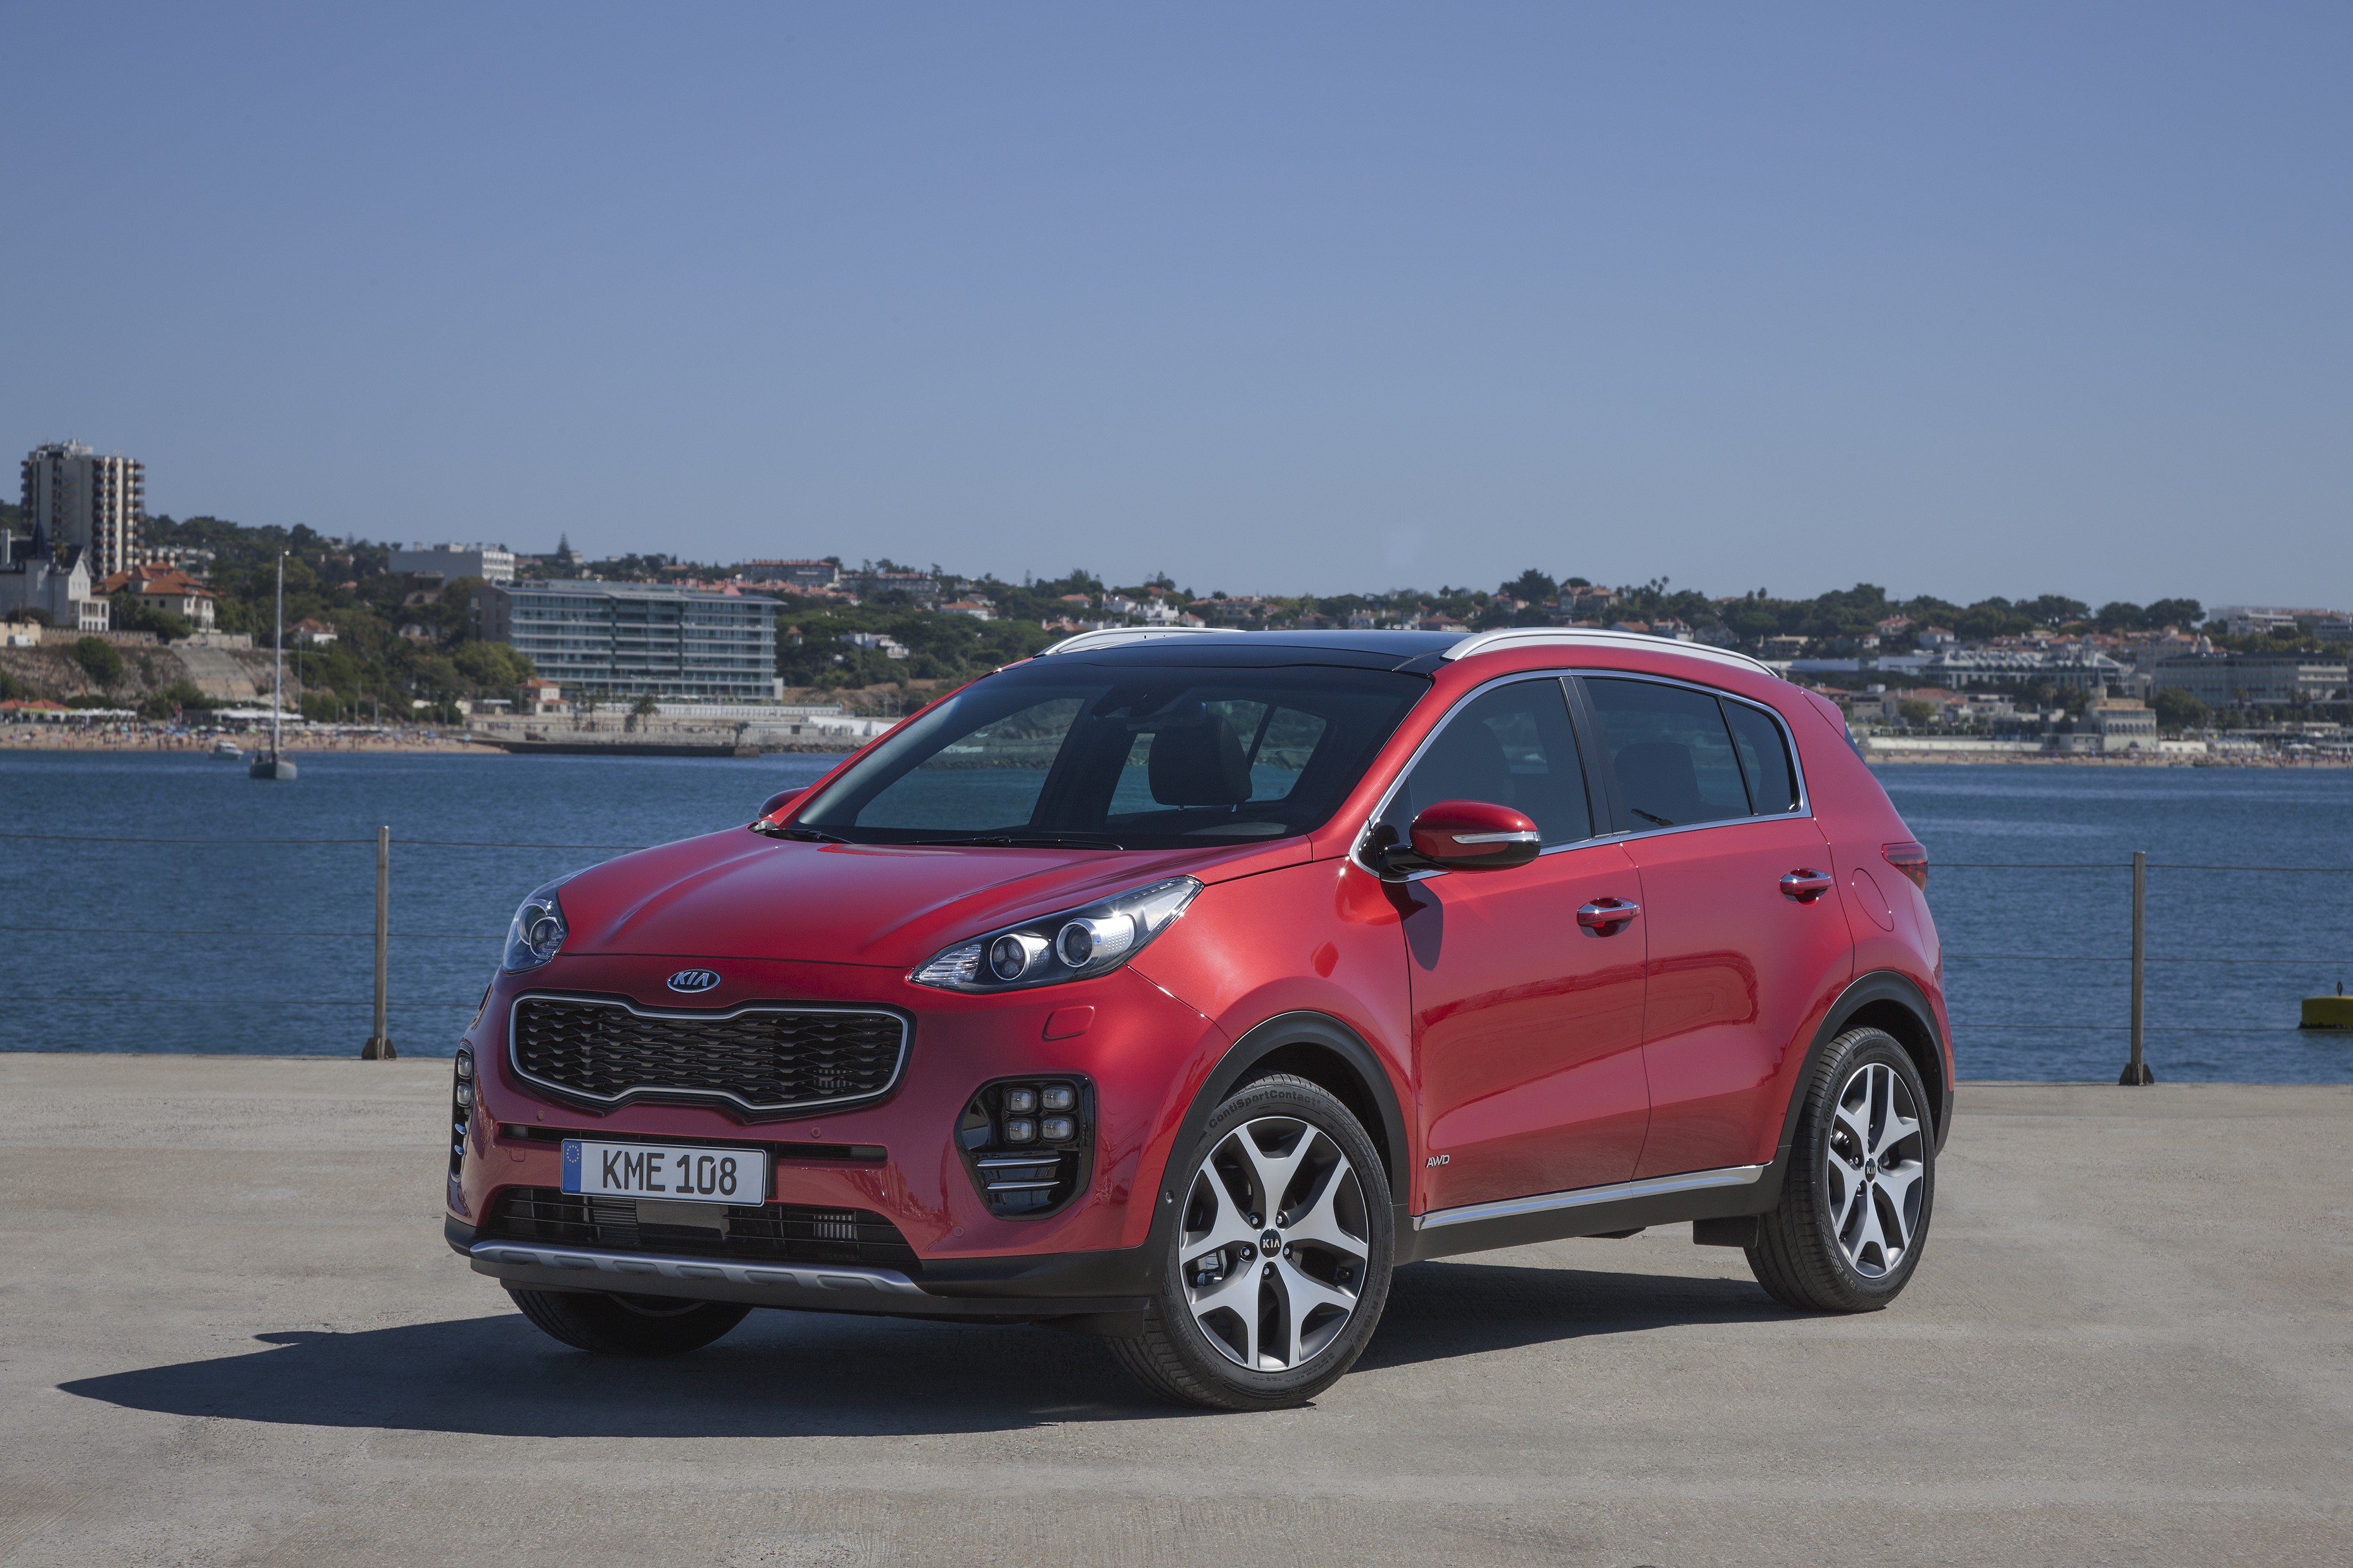 2016 kia sportage first walkaround video reveals radical. Black Bedroom Furniture Sets. Home Design Ideas